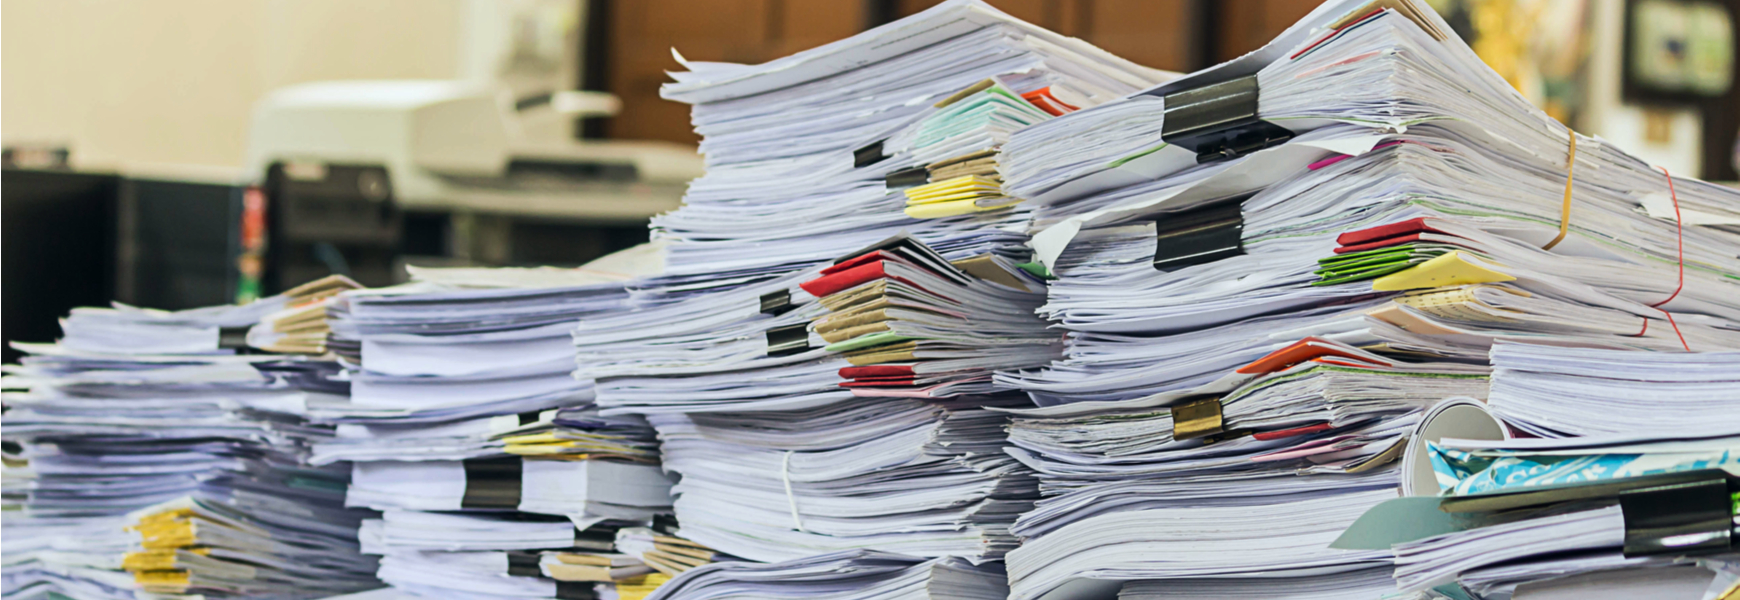 stack of papers documents